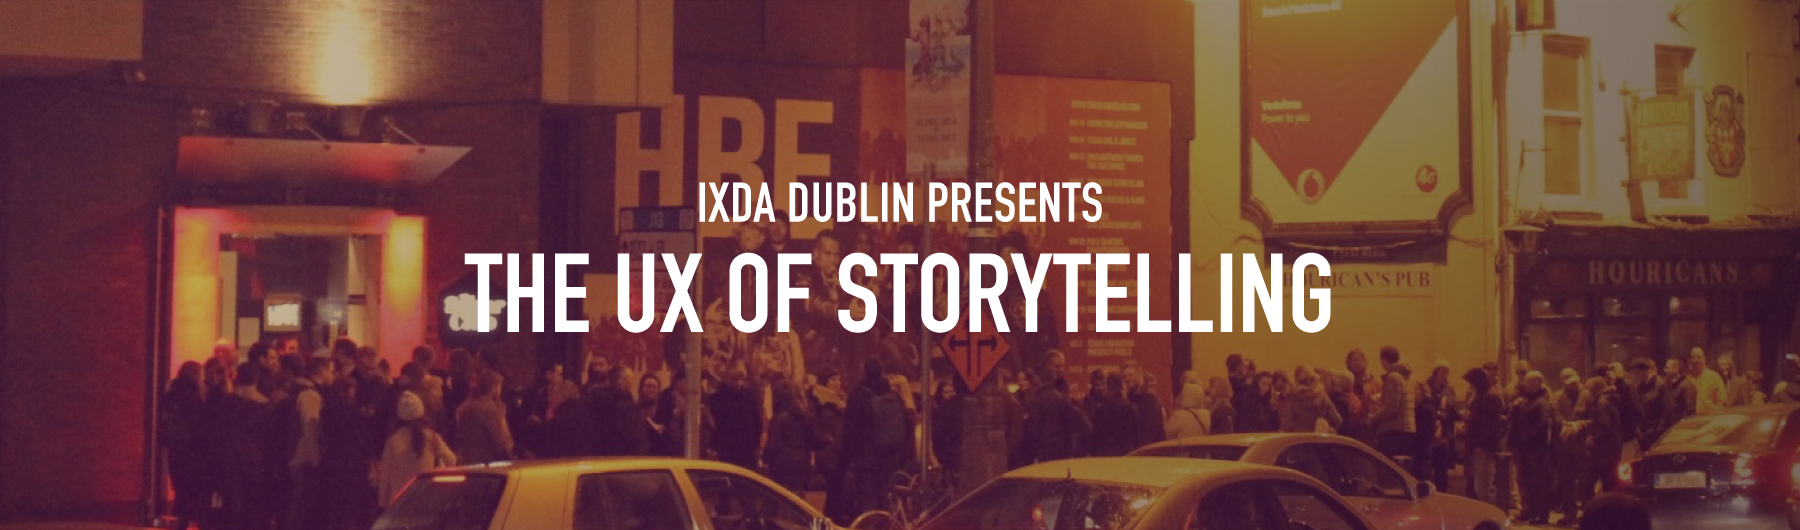 The UX of Storytelling